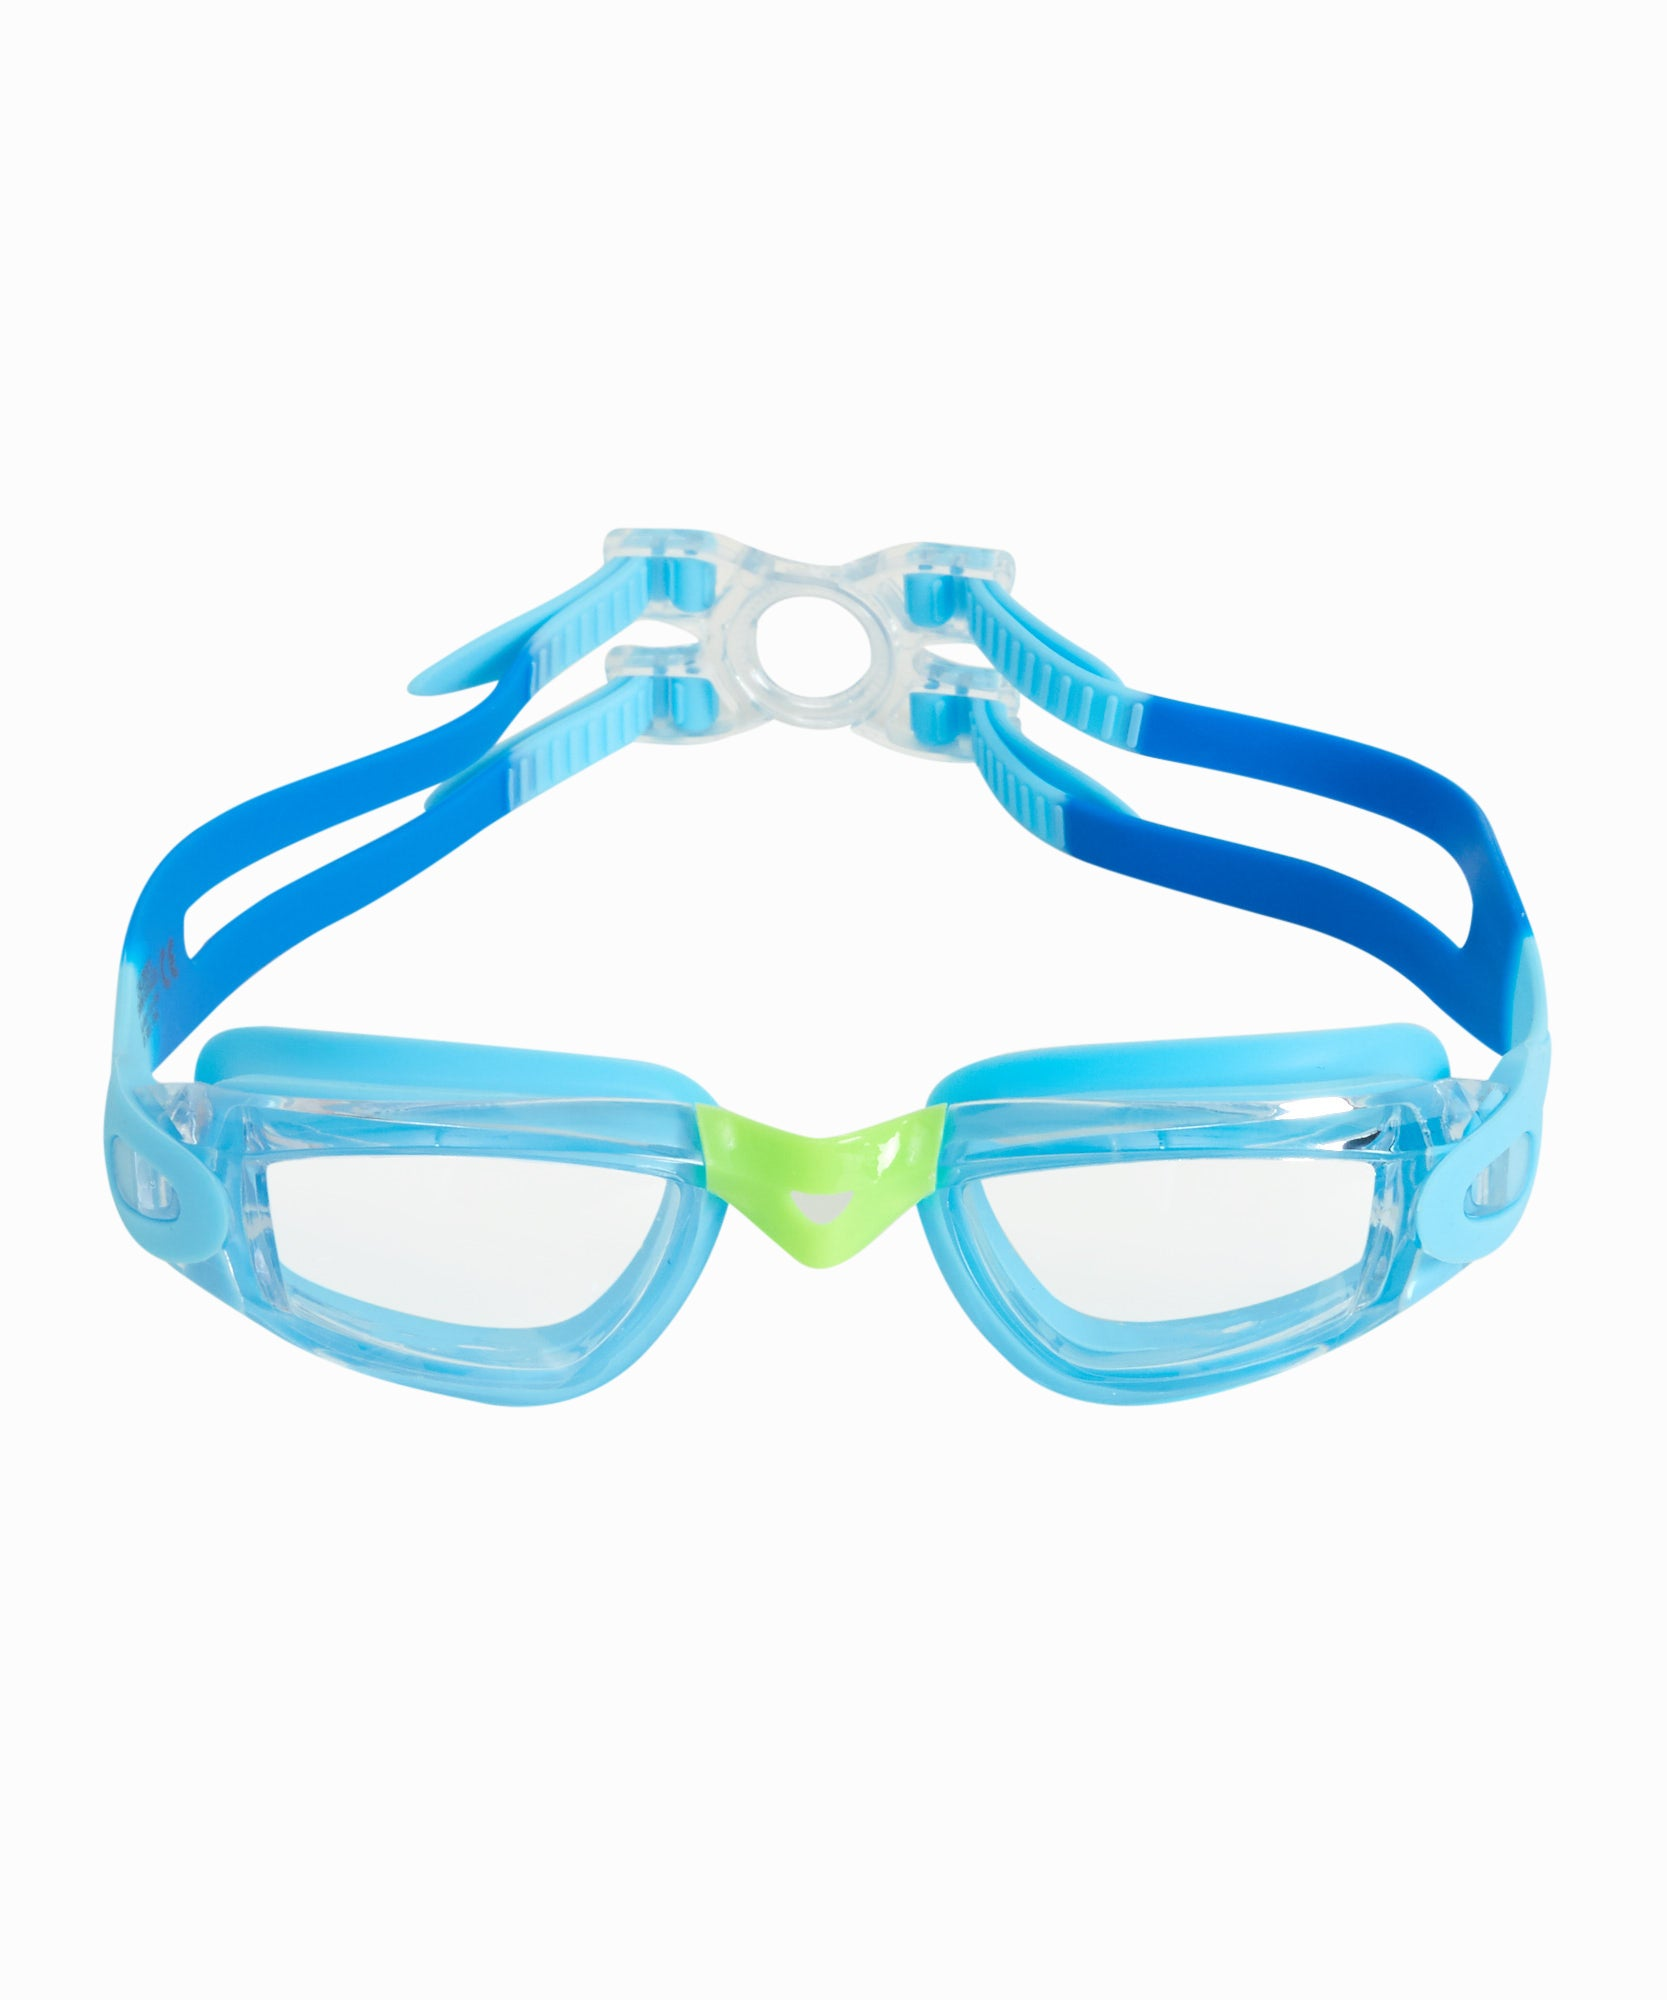 Latex-free, anti-fog, and UV protective, high-quality goggles. Imported.